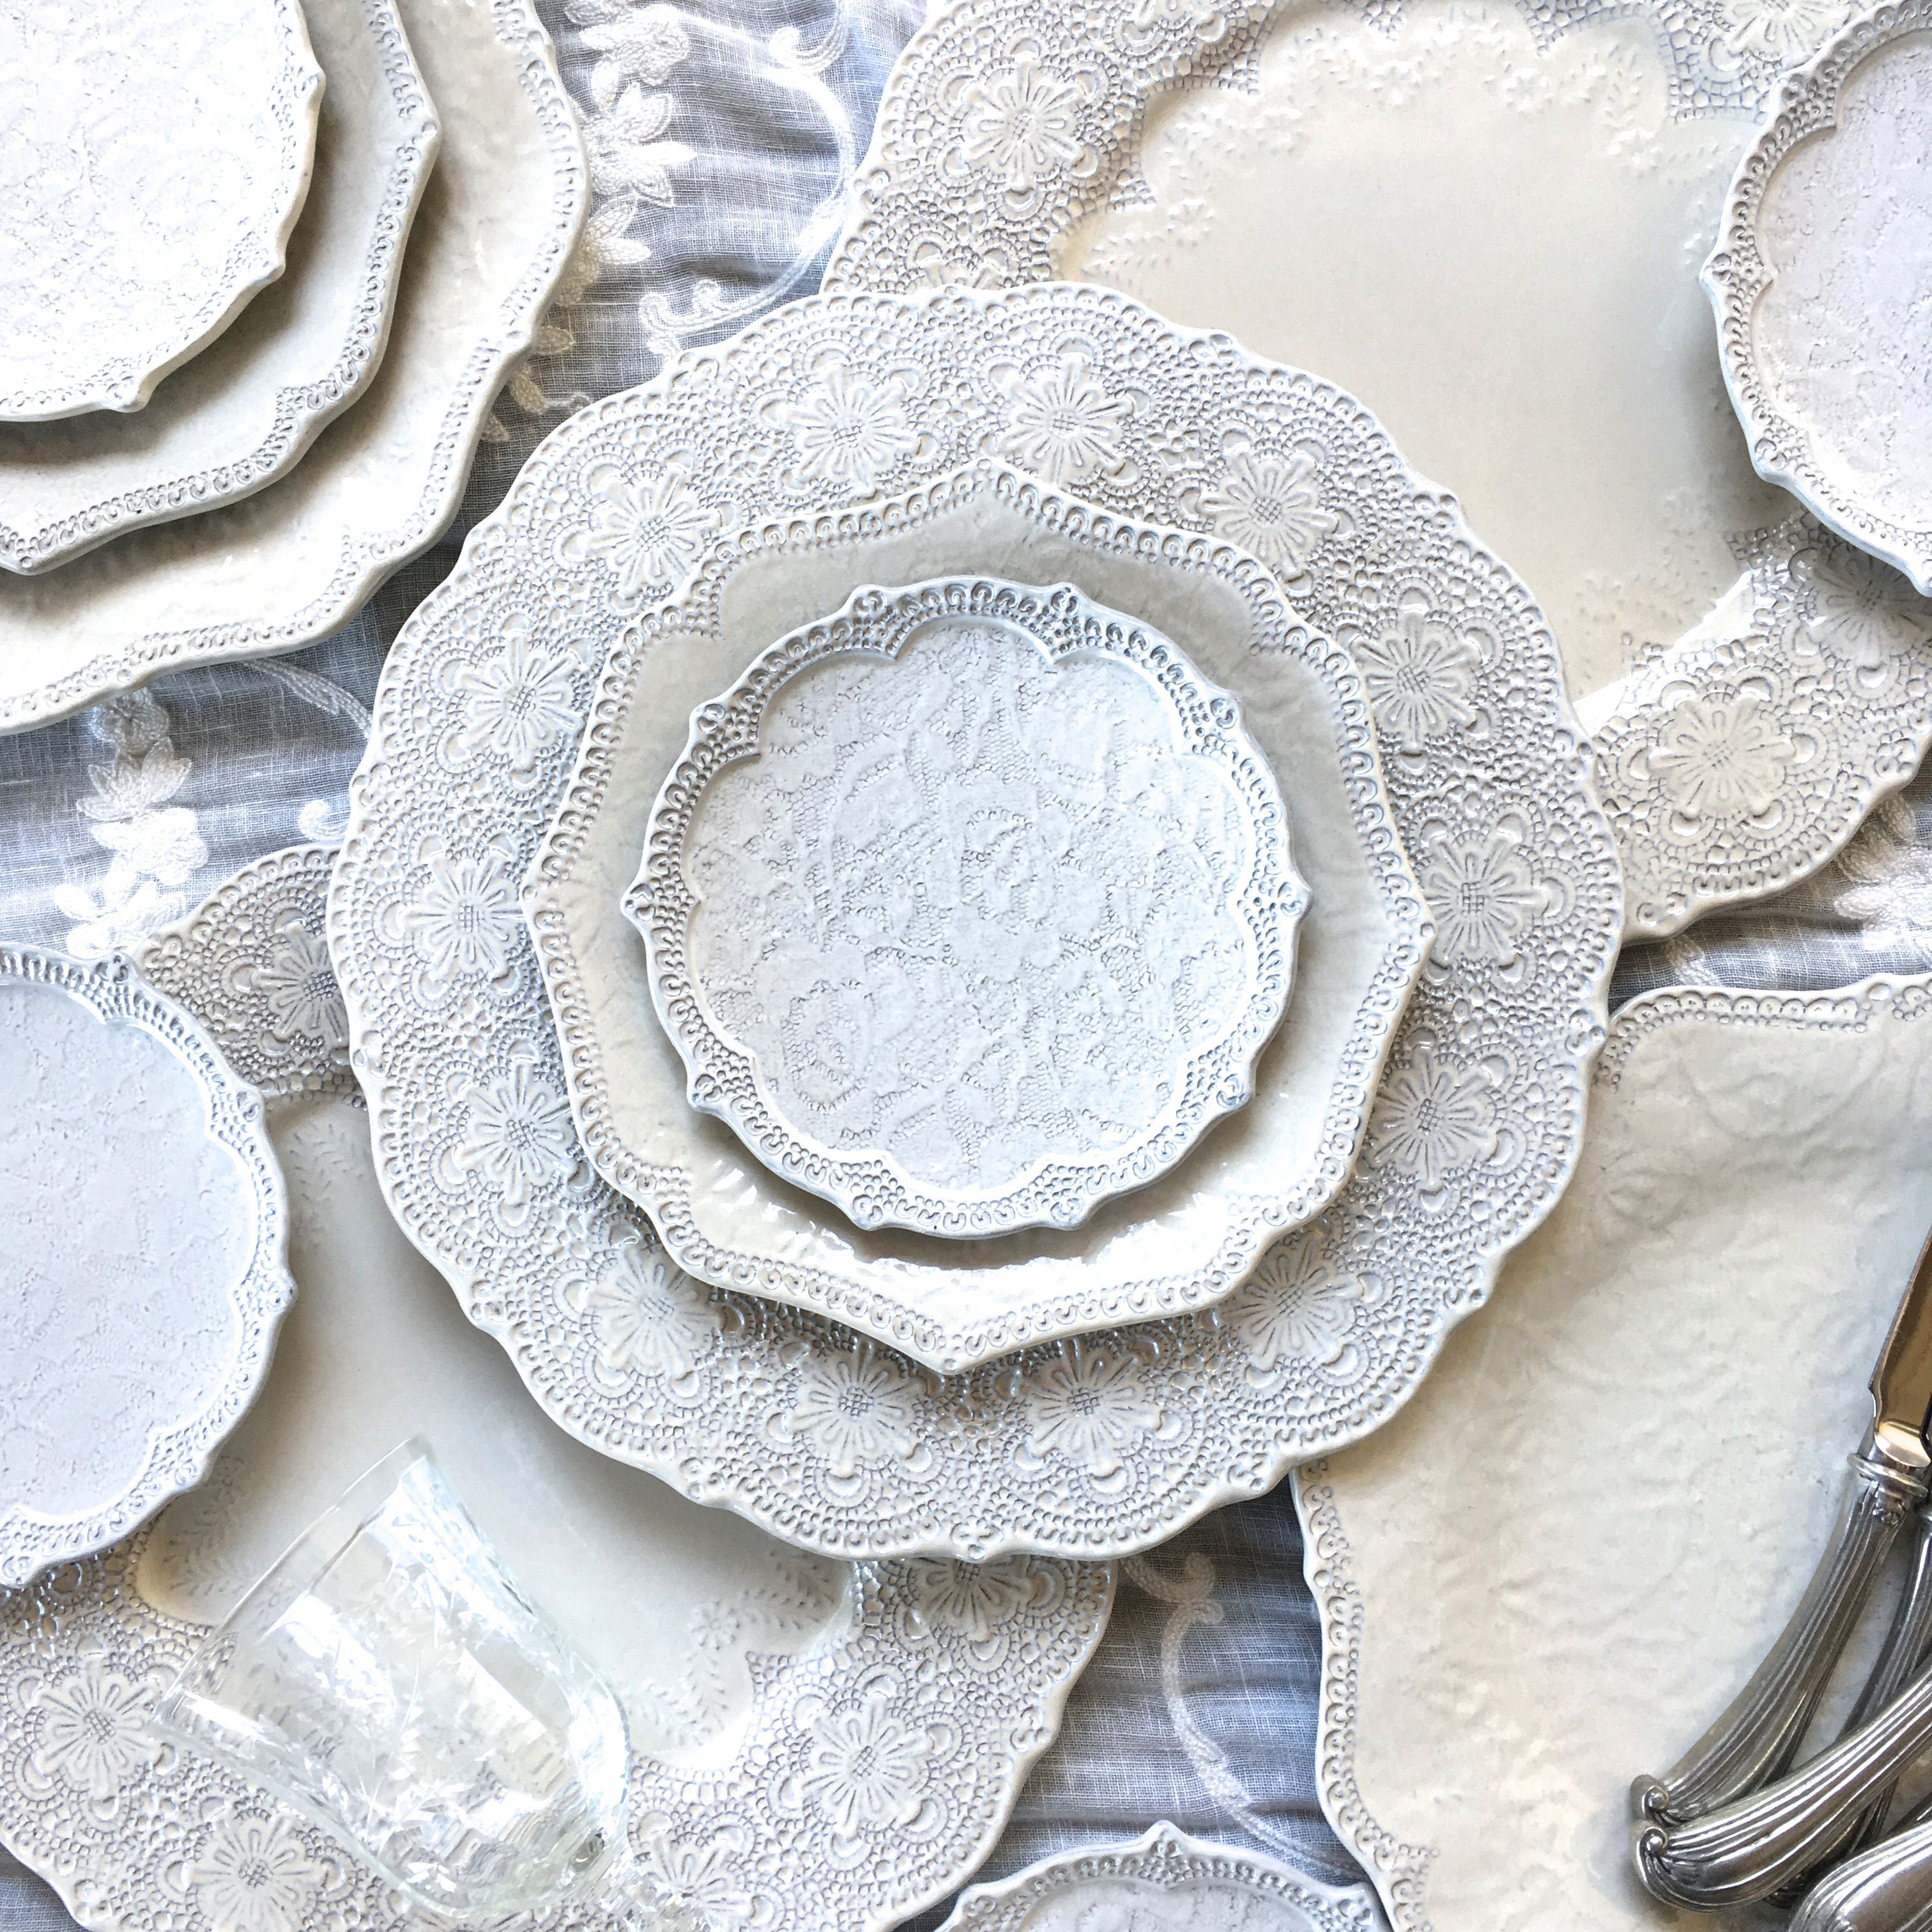 the ARK collection - Amalfi Lace China & the ARK collection - Amalfi Lace China | ARK Dinnerware collections ...